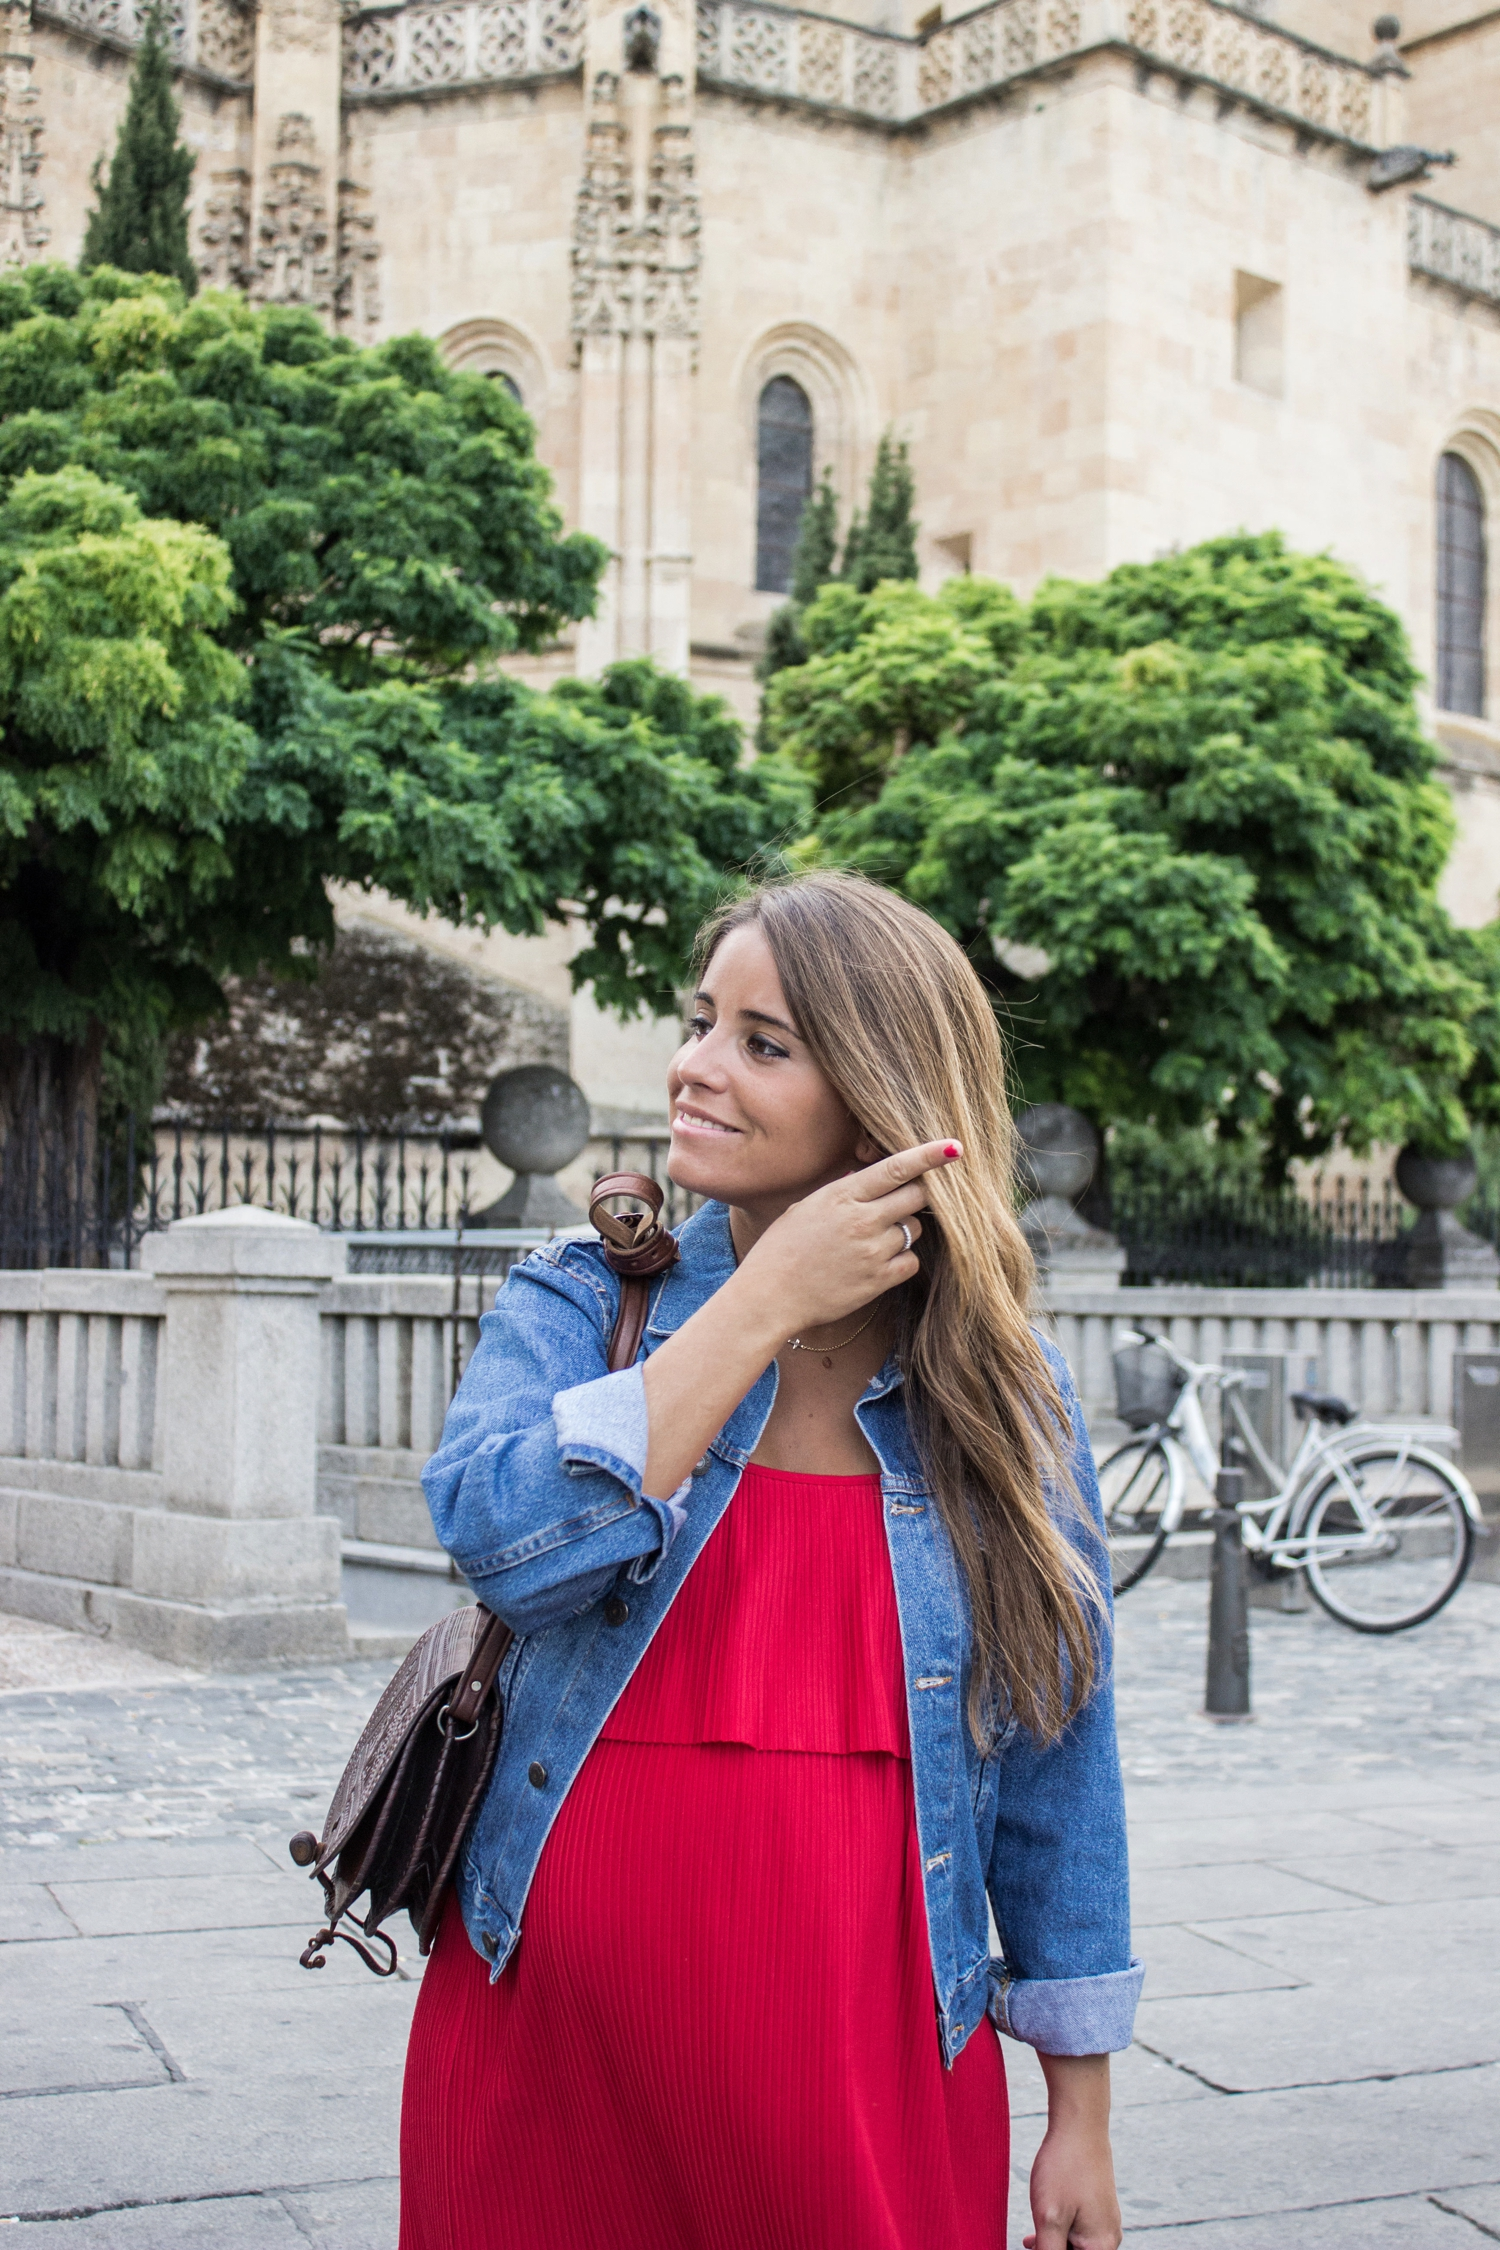 loreto-made-in-style-vestido-rojo-red-dress-segovia-leather-white-vans-denim-jacket-2